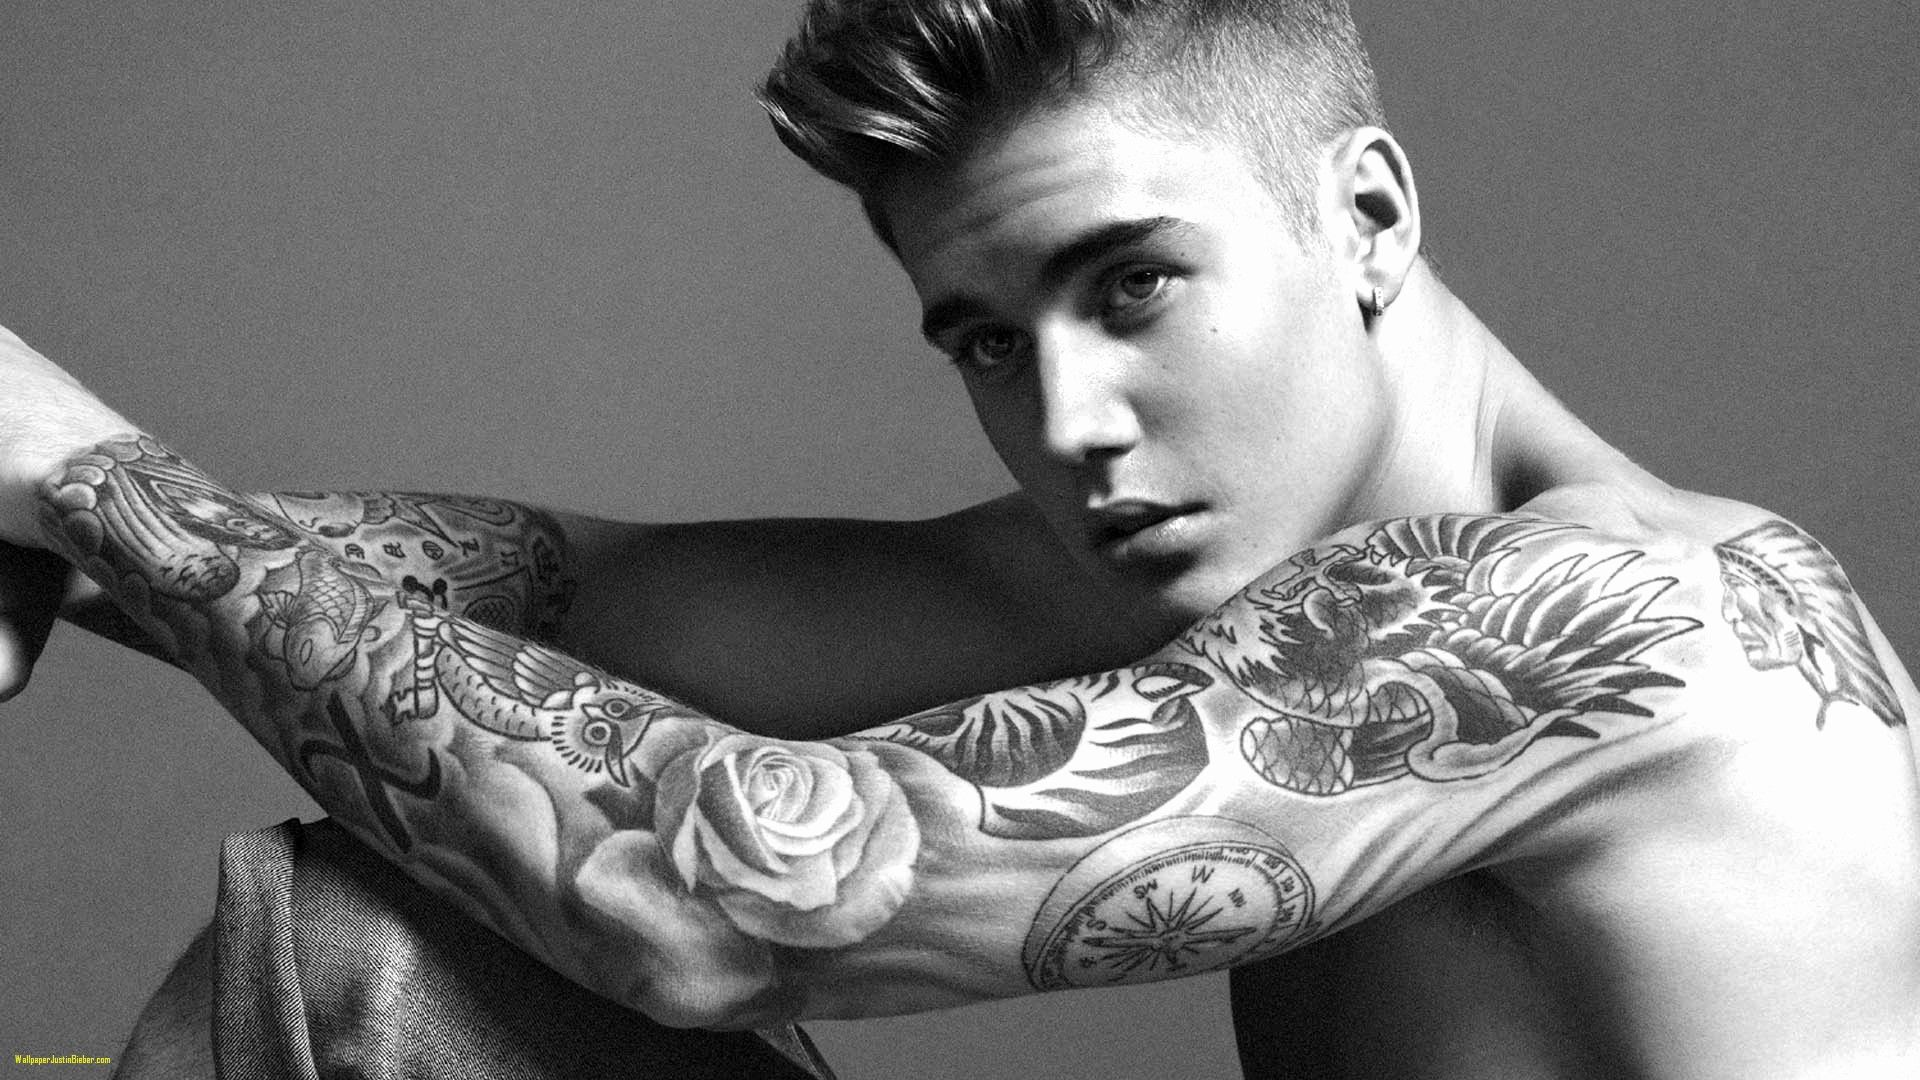 Justin Bieber 2015 Wallpaper In Hd Beautiful Justin Bieber New ...